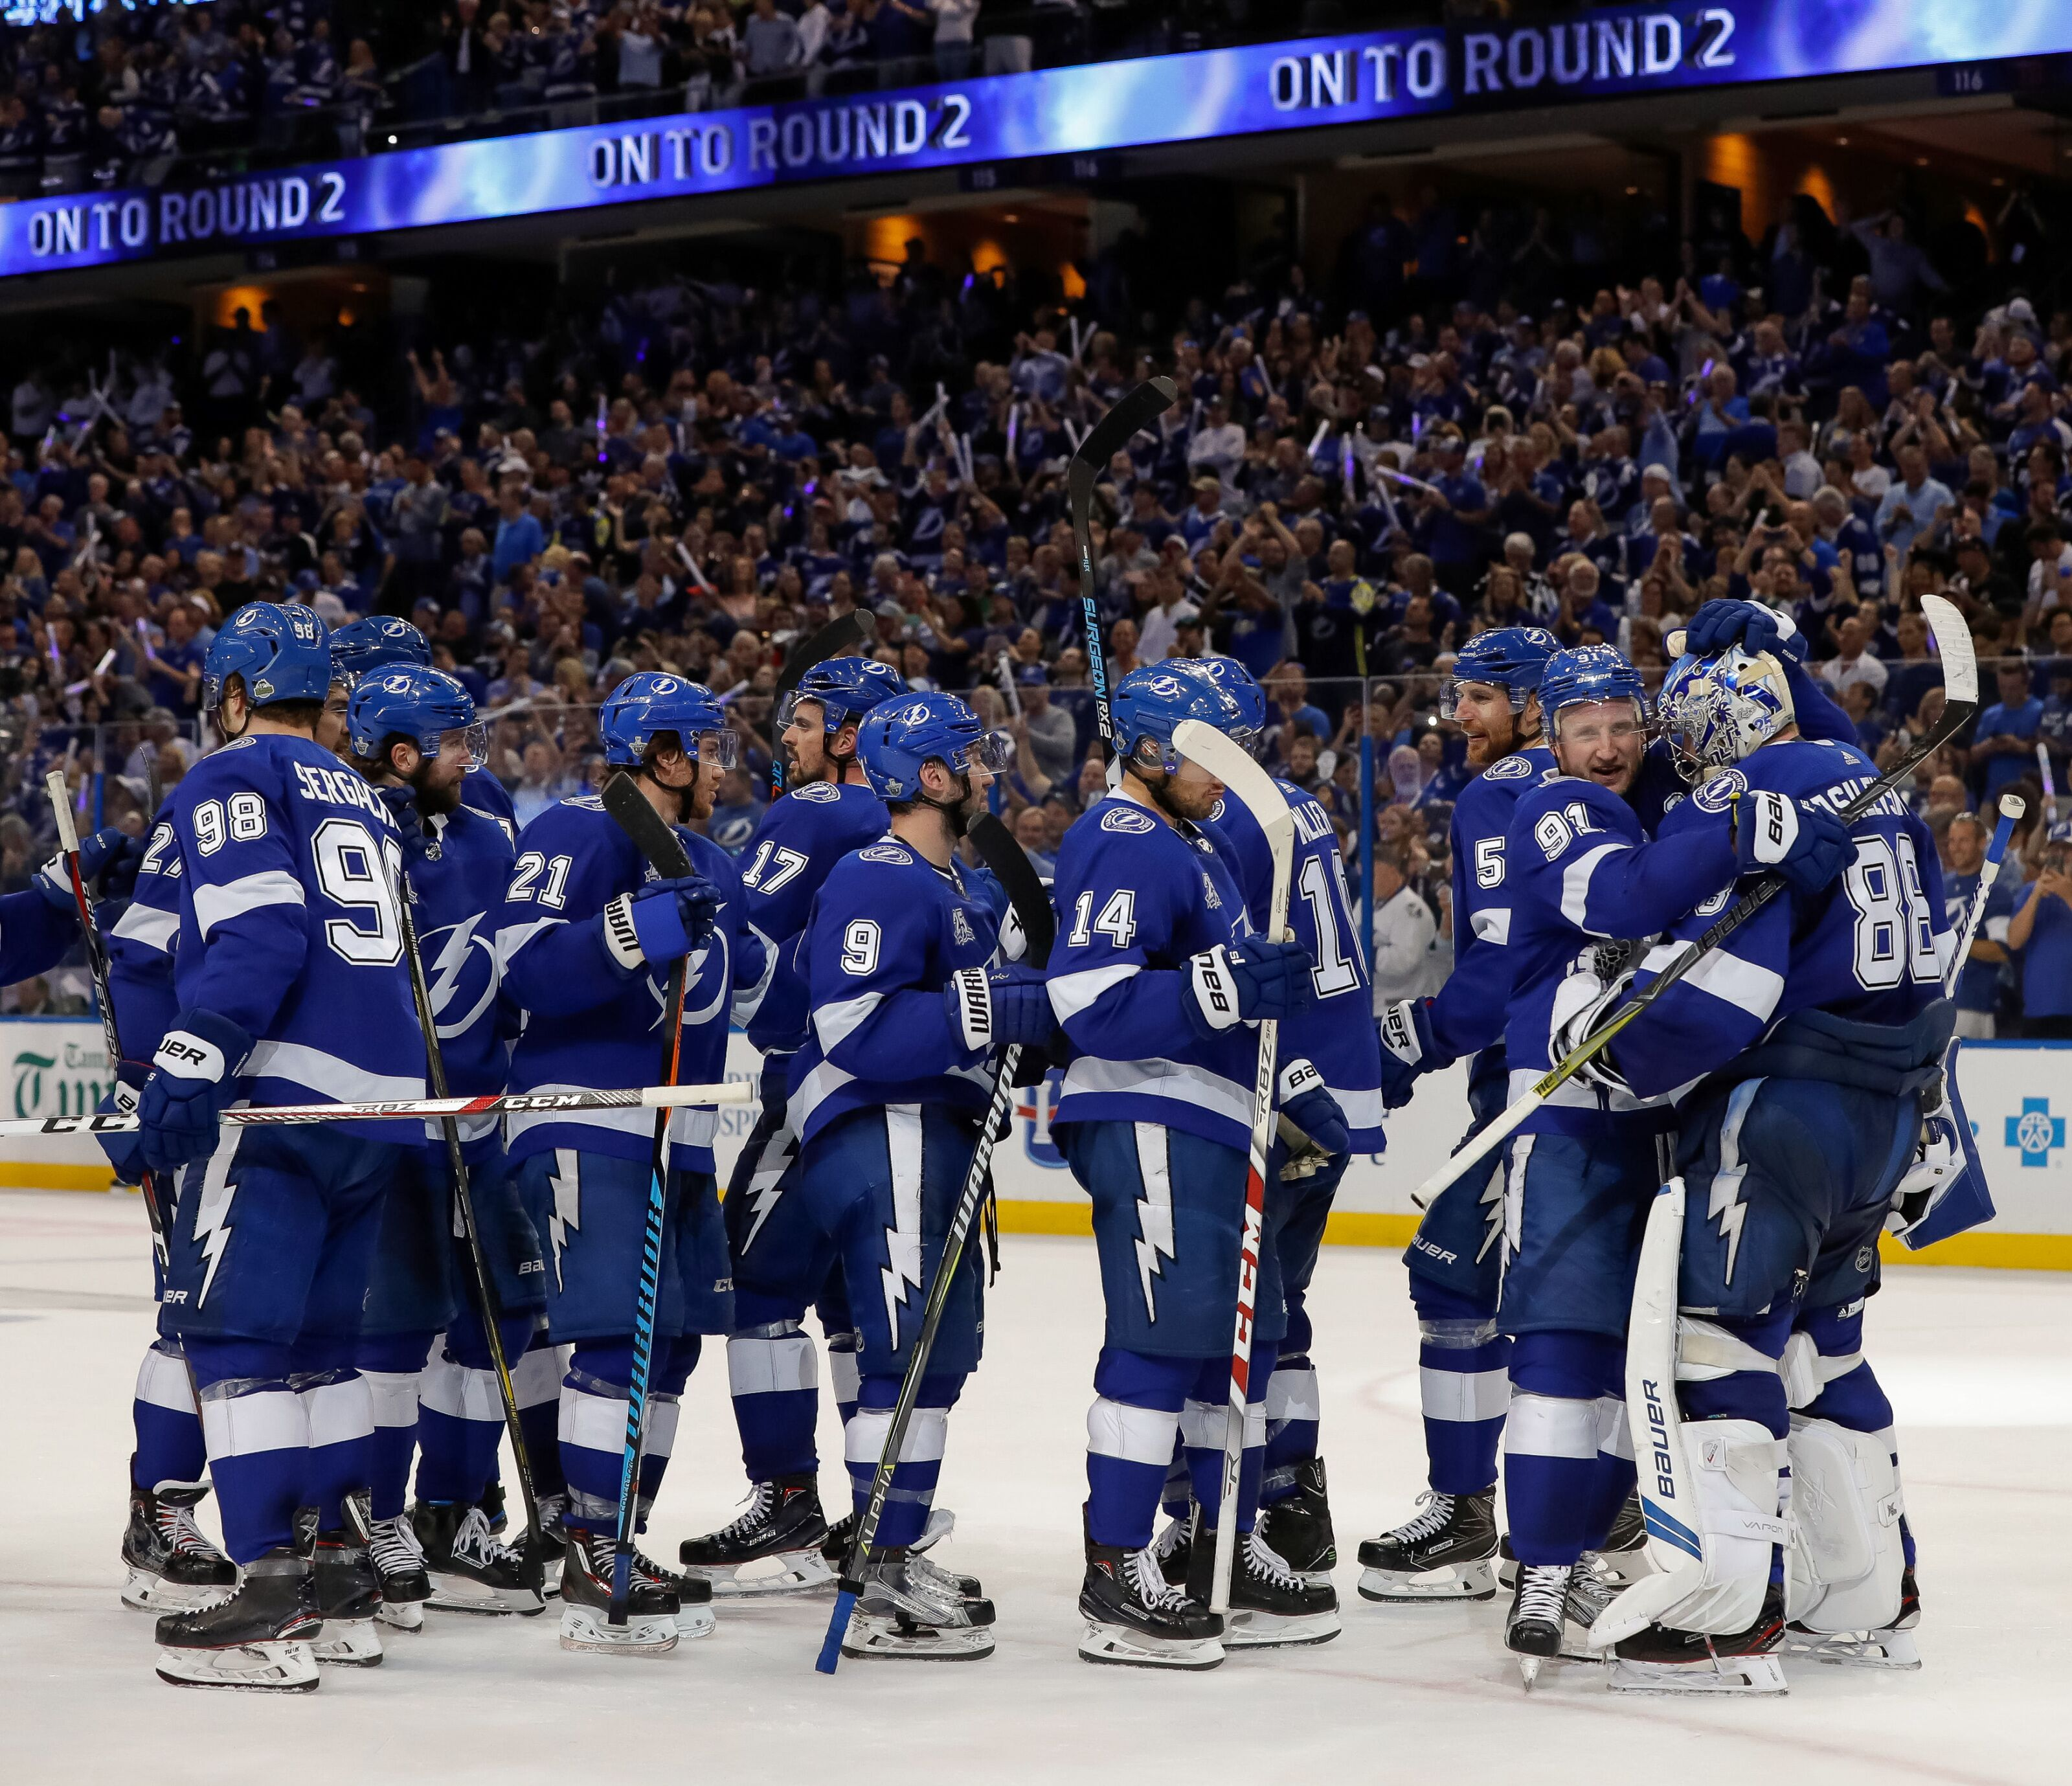 Stanley Cup Playoffs  Tampa Bay Lightning advances to next round with 3-1  victory over Devils c54d3eb4a